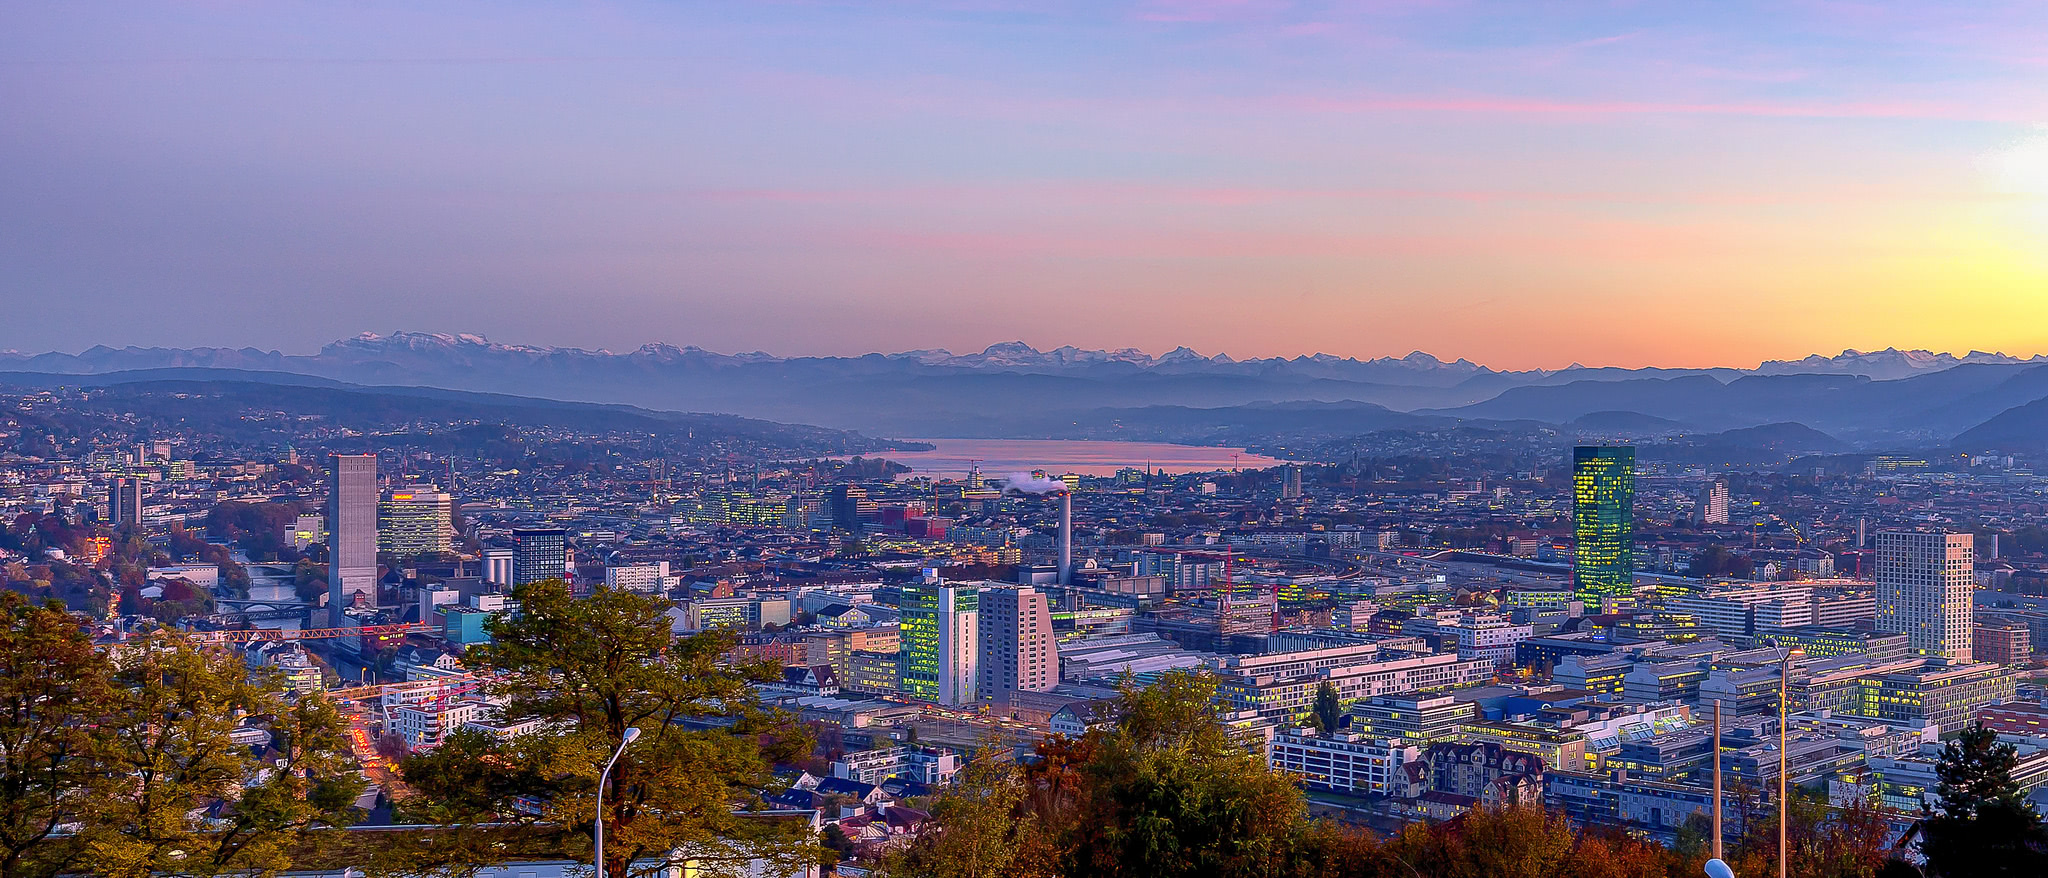 Zurich purple hour (panorama shot)